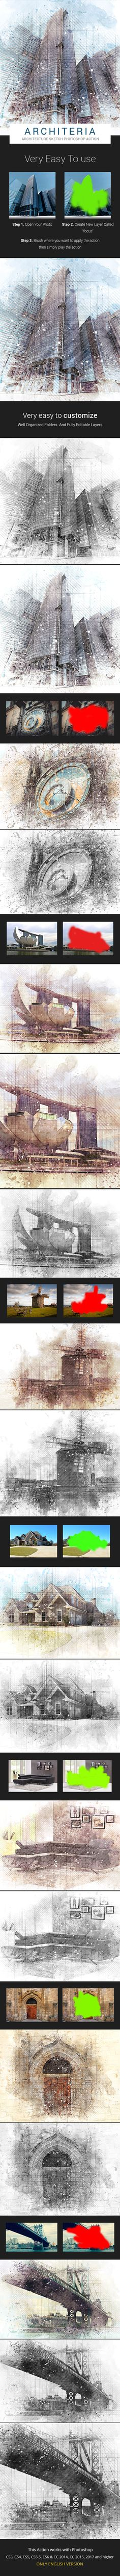 Architeria - Architecture Sketch #Photoshop Action - #Photo #Effects Actions